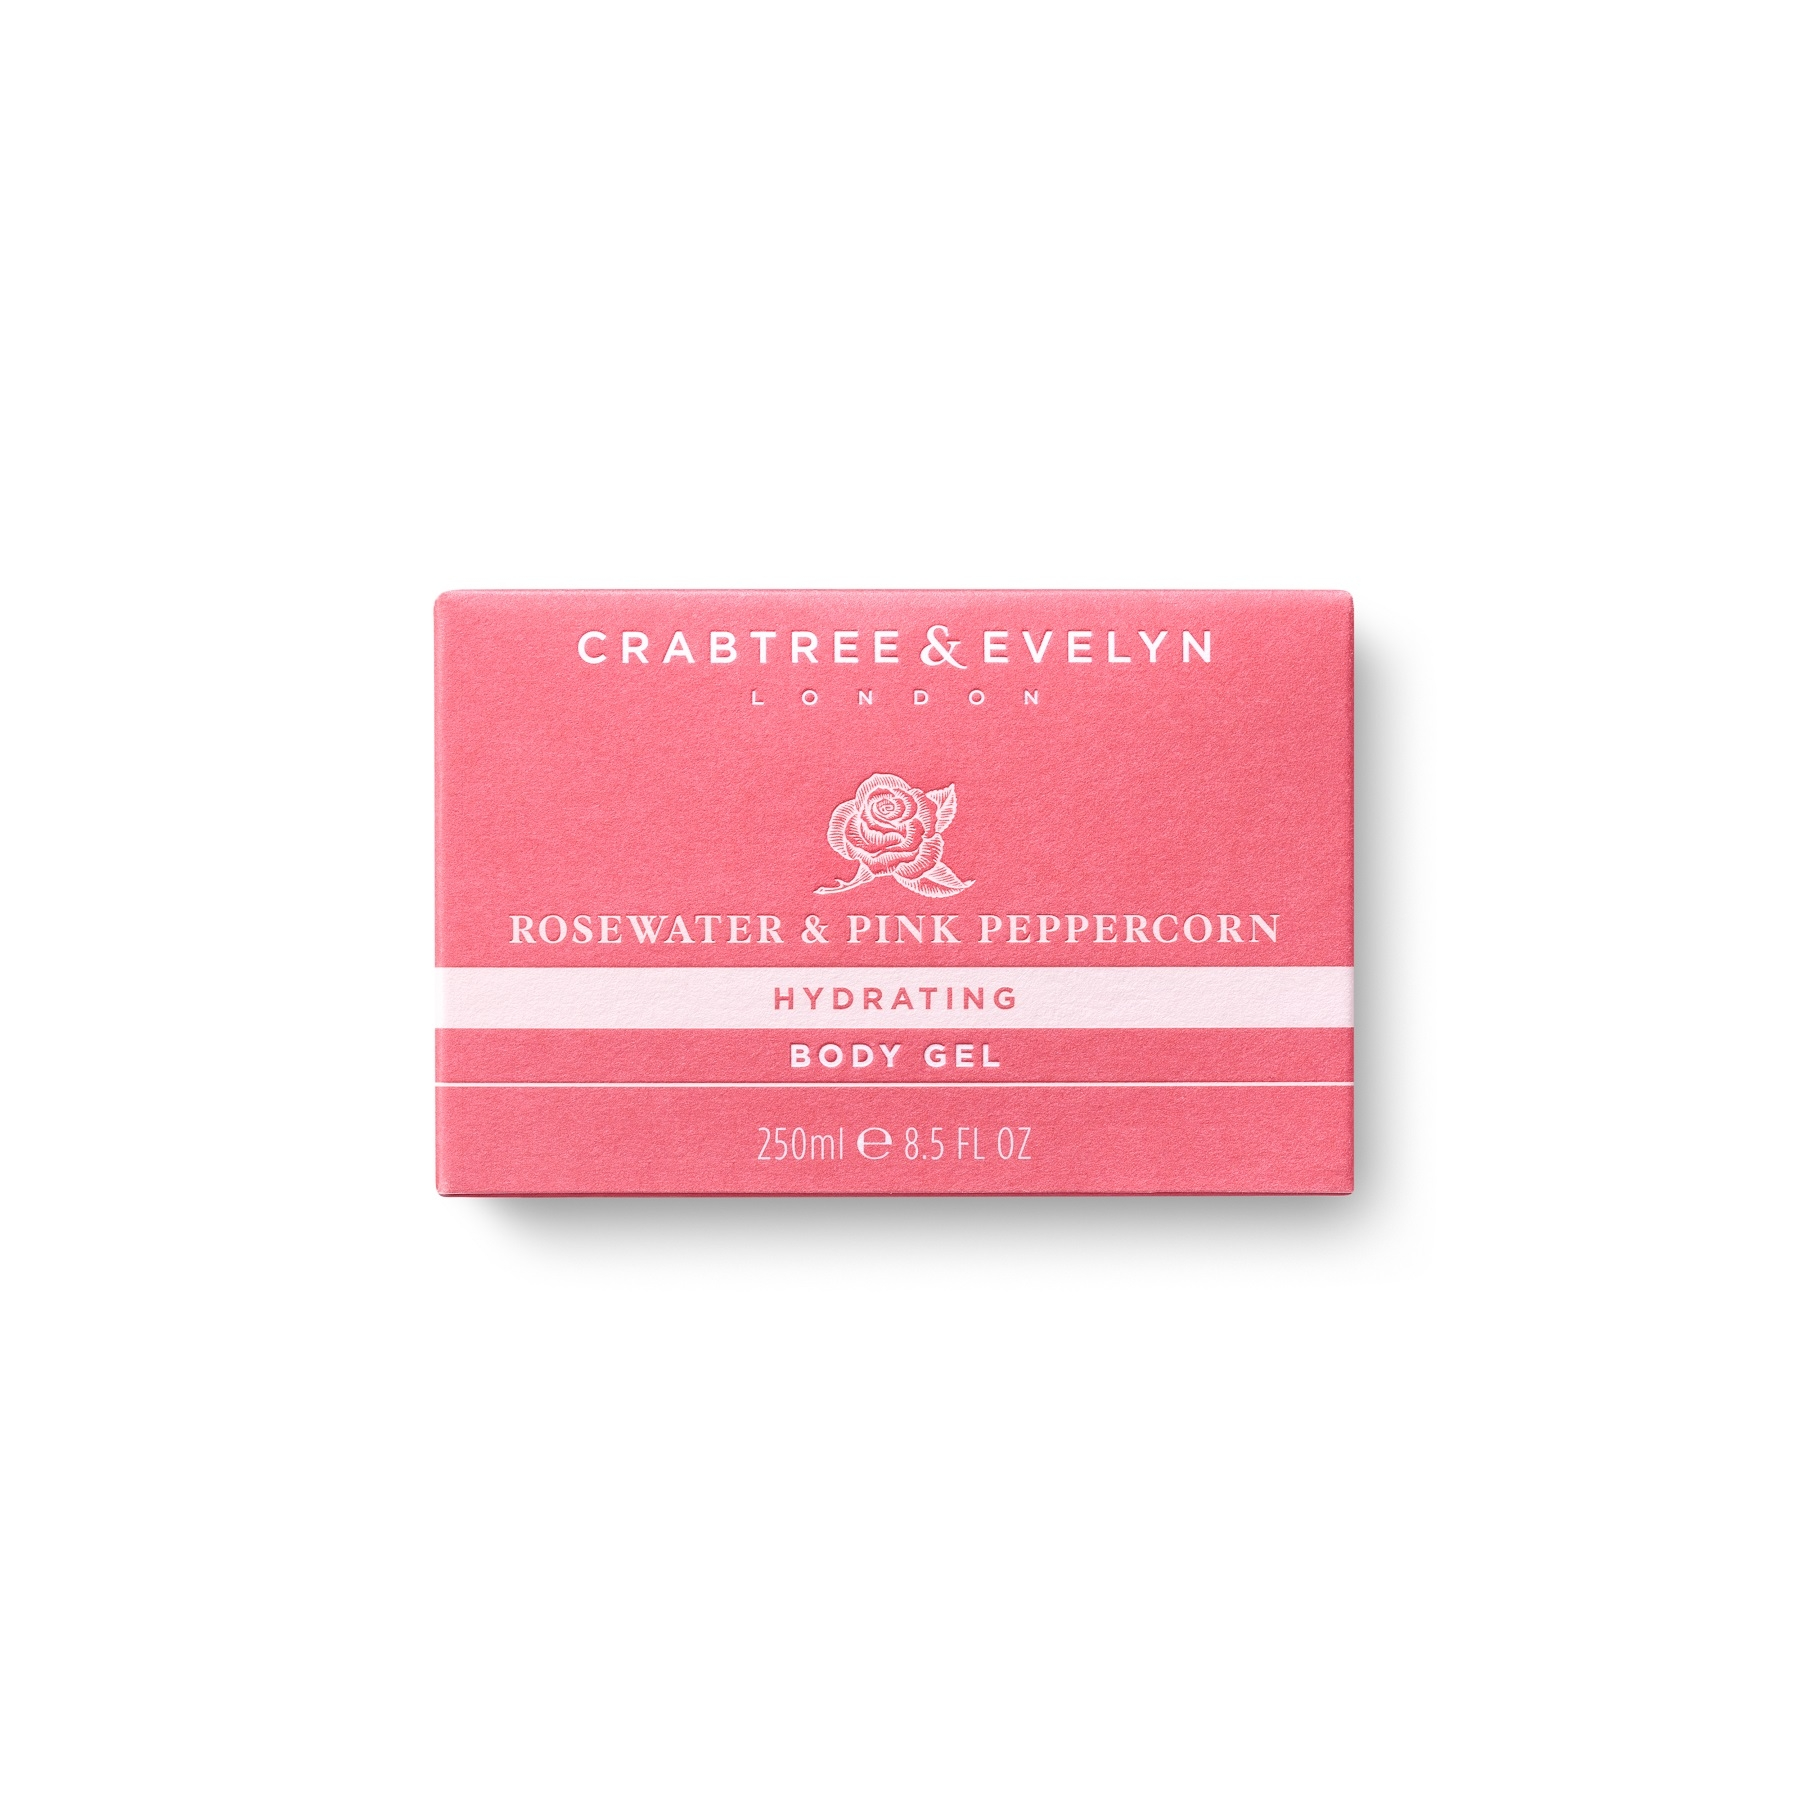 Crabtree & Evelyn Rosewater & Pink Peppercorn Hydrating Gel 250g